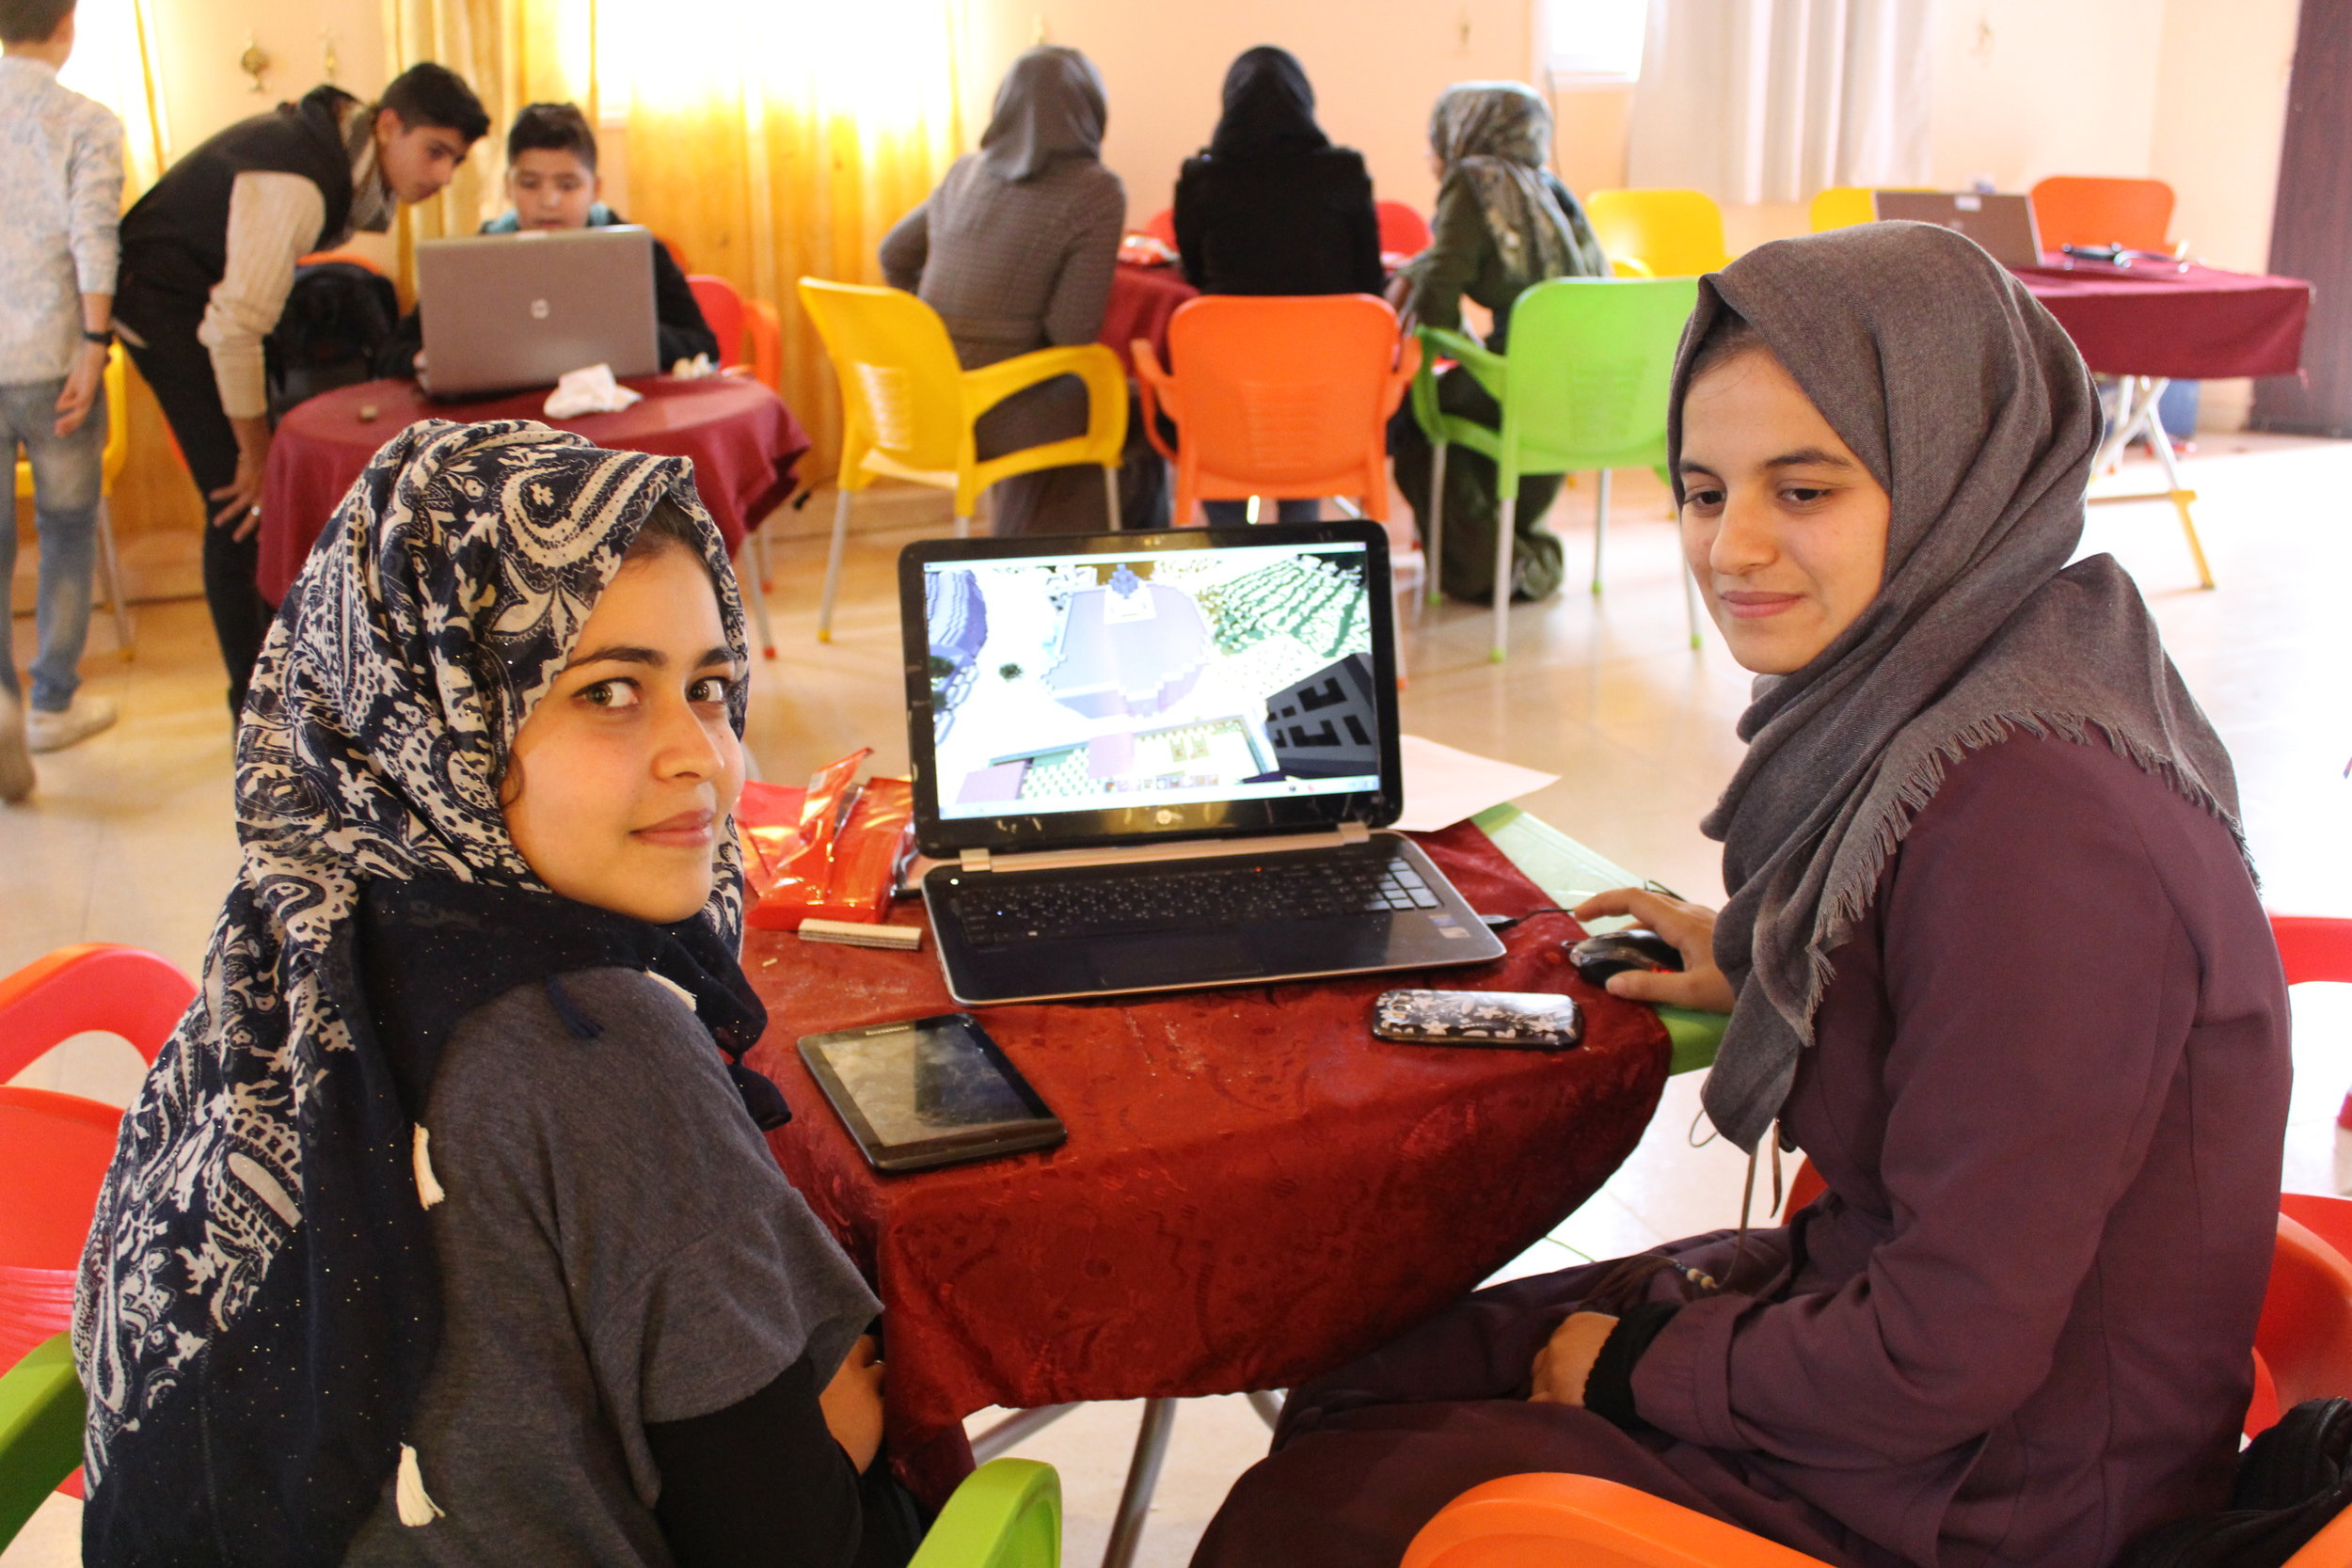 A team of women works to design the Beit Lahia community garden with the help of Minecraft. Credit: UN-Habitat